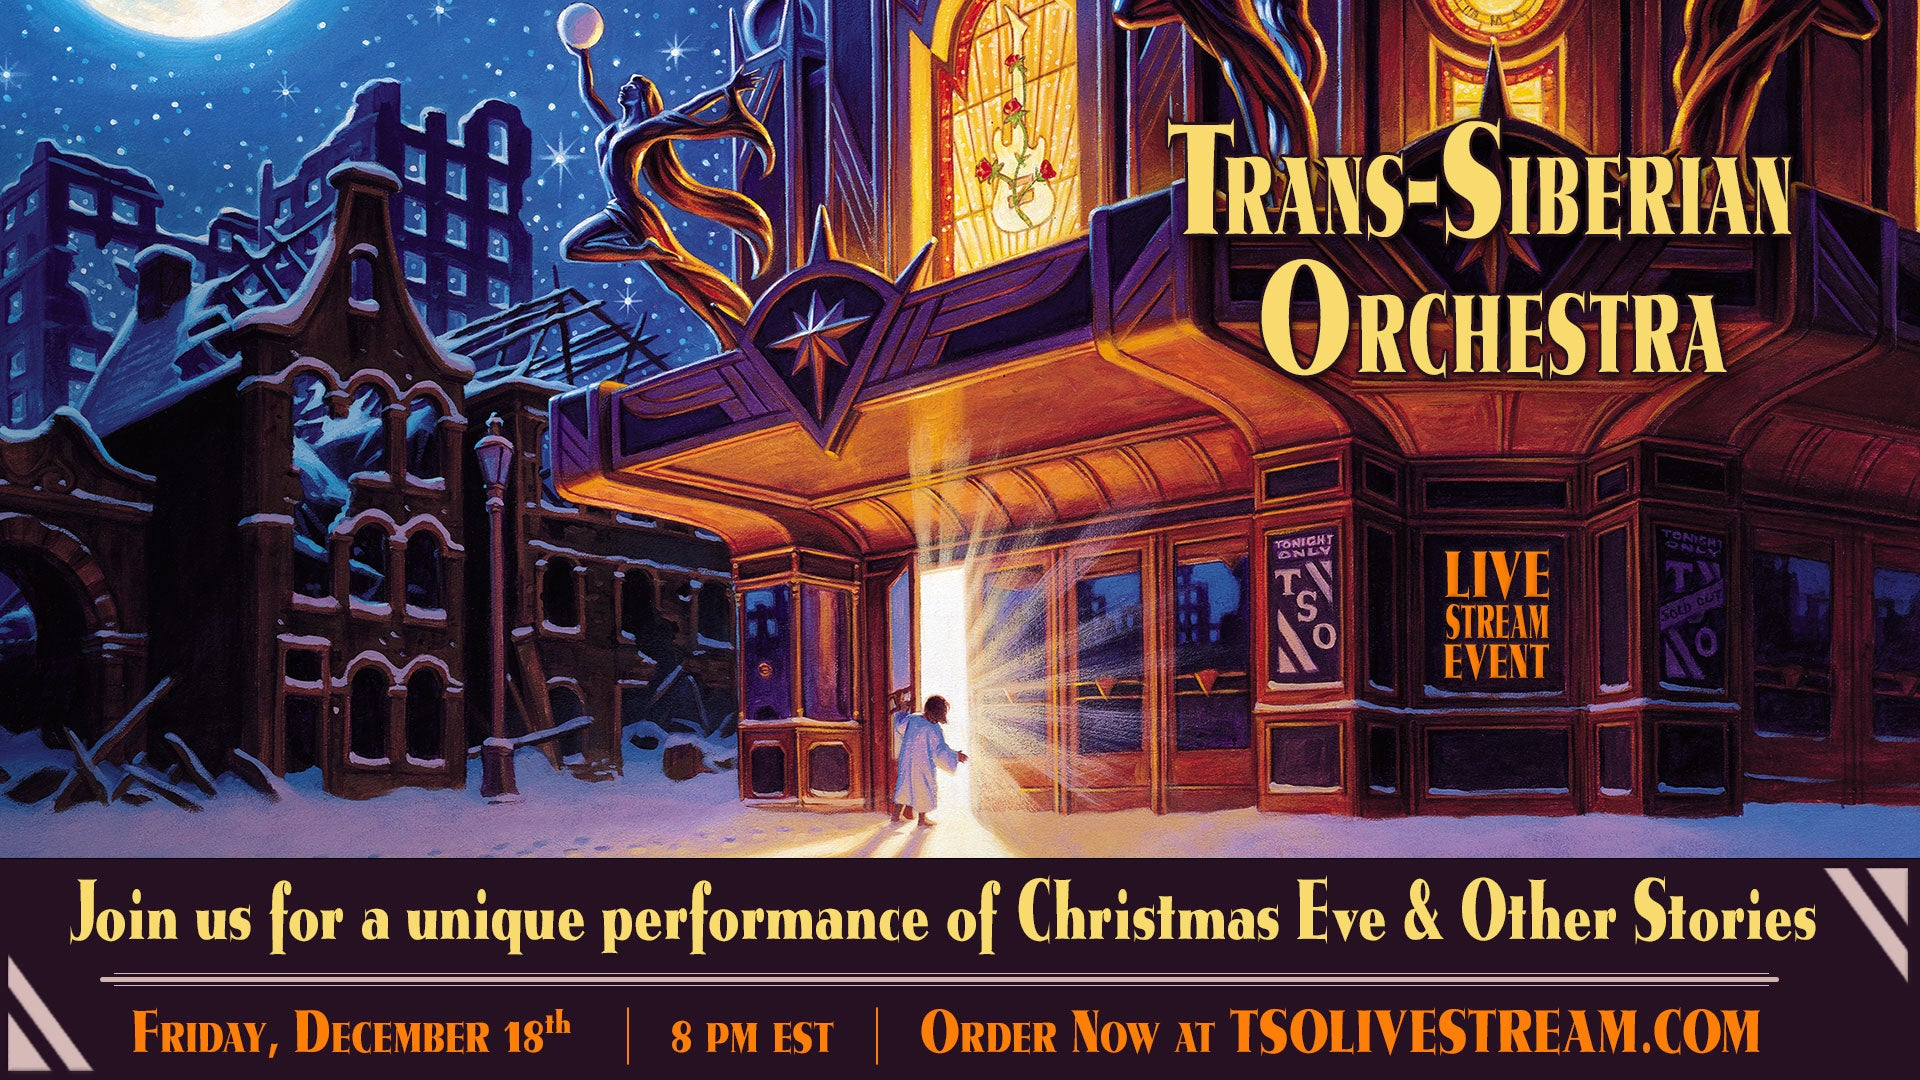 Trans Siberian Orchestra 2020 Christmas Special Trans Siberian Orchestra Announces 'Christmas Eve and Other